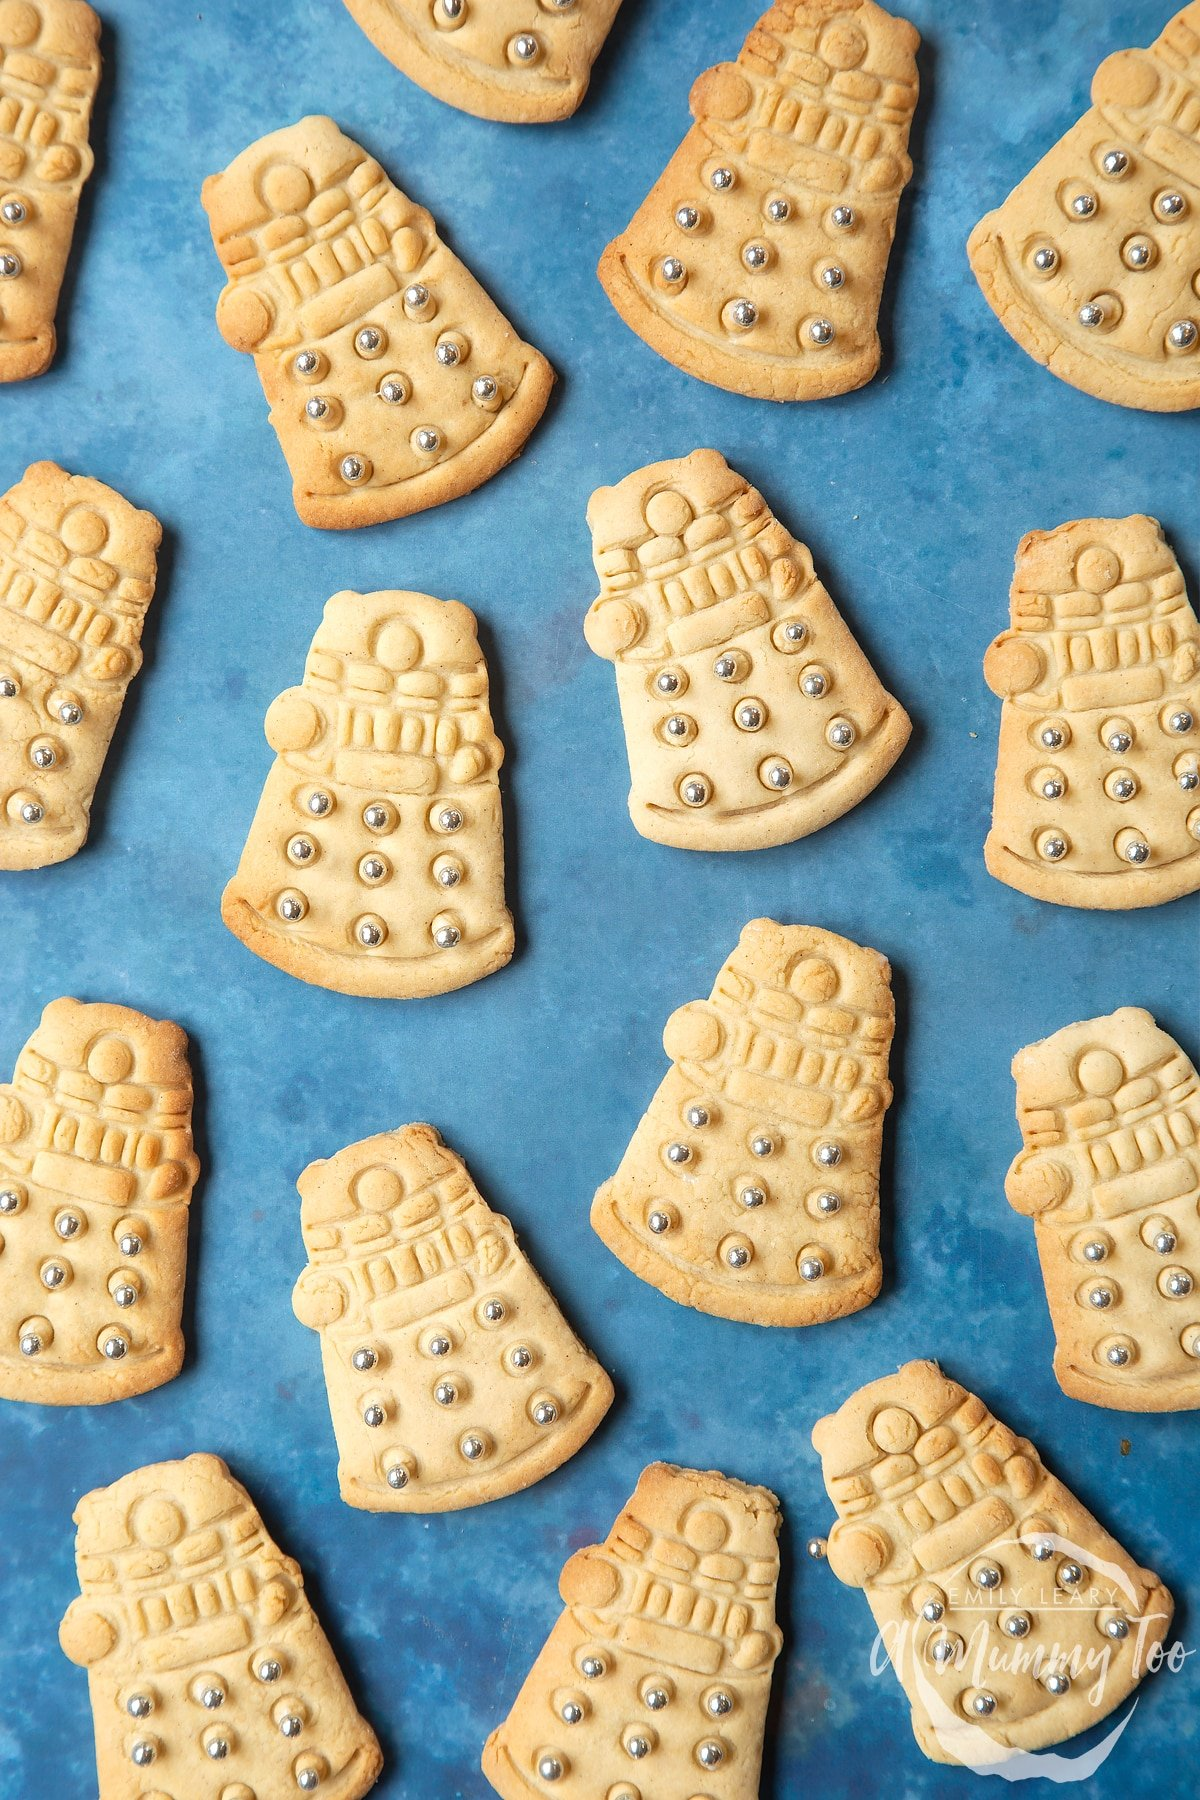 Dalek sugar cookies decorated with silver candy balls.